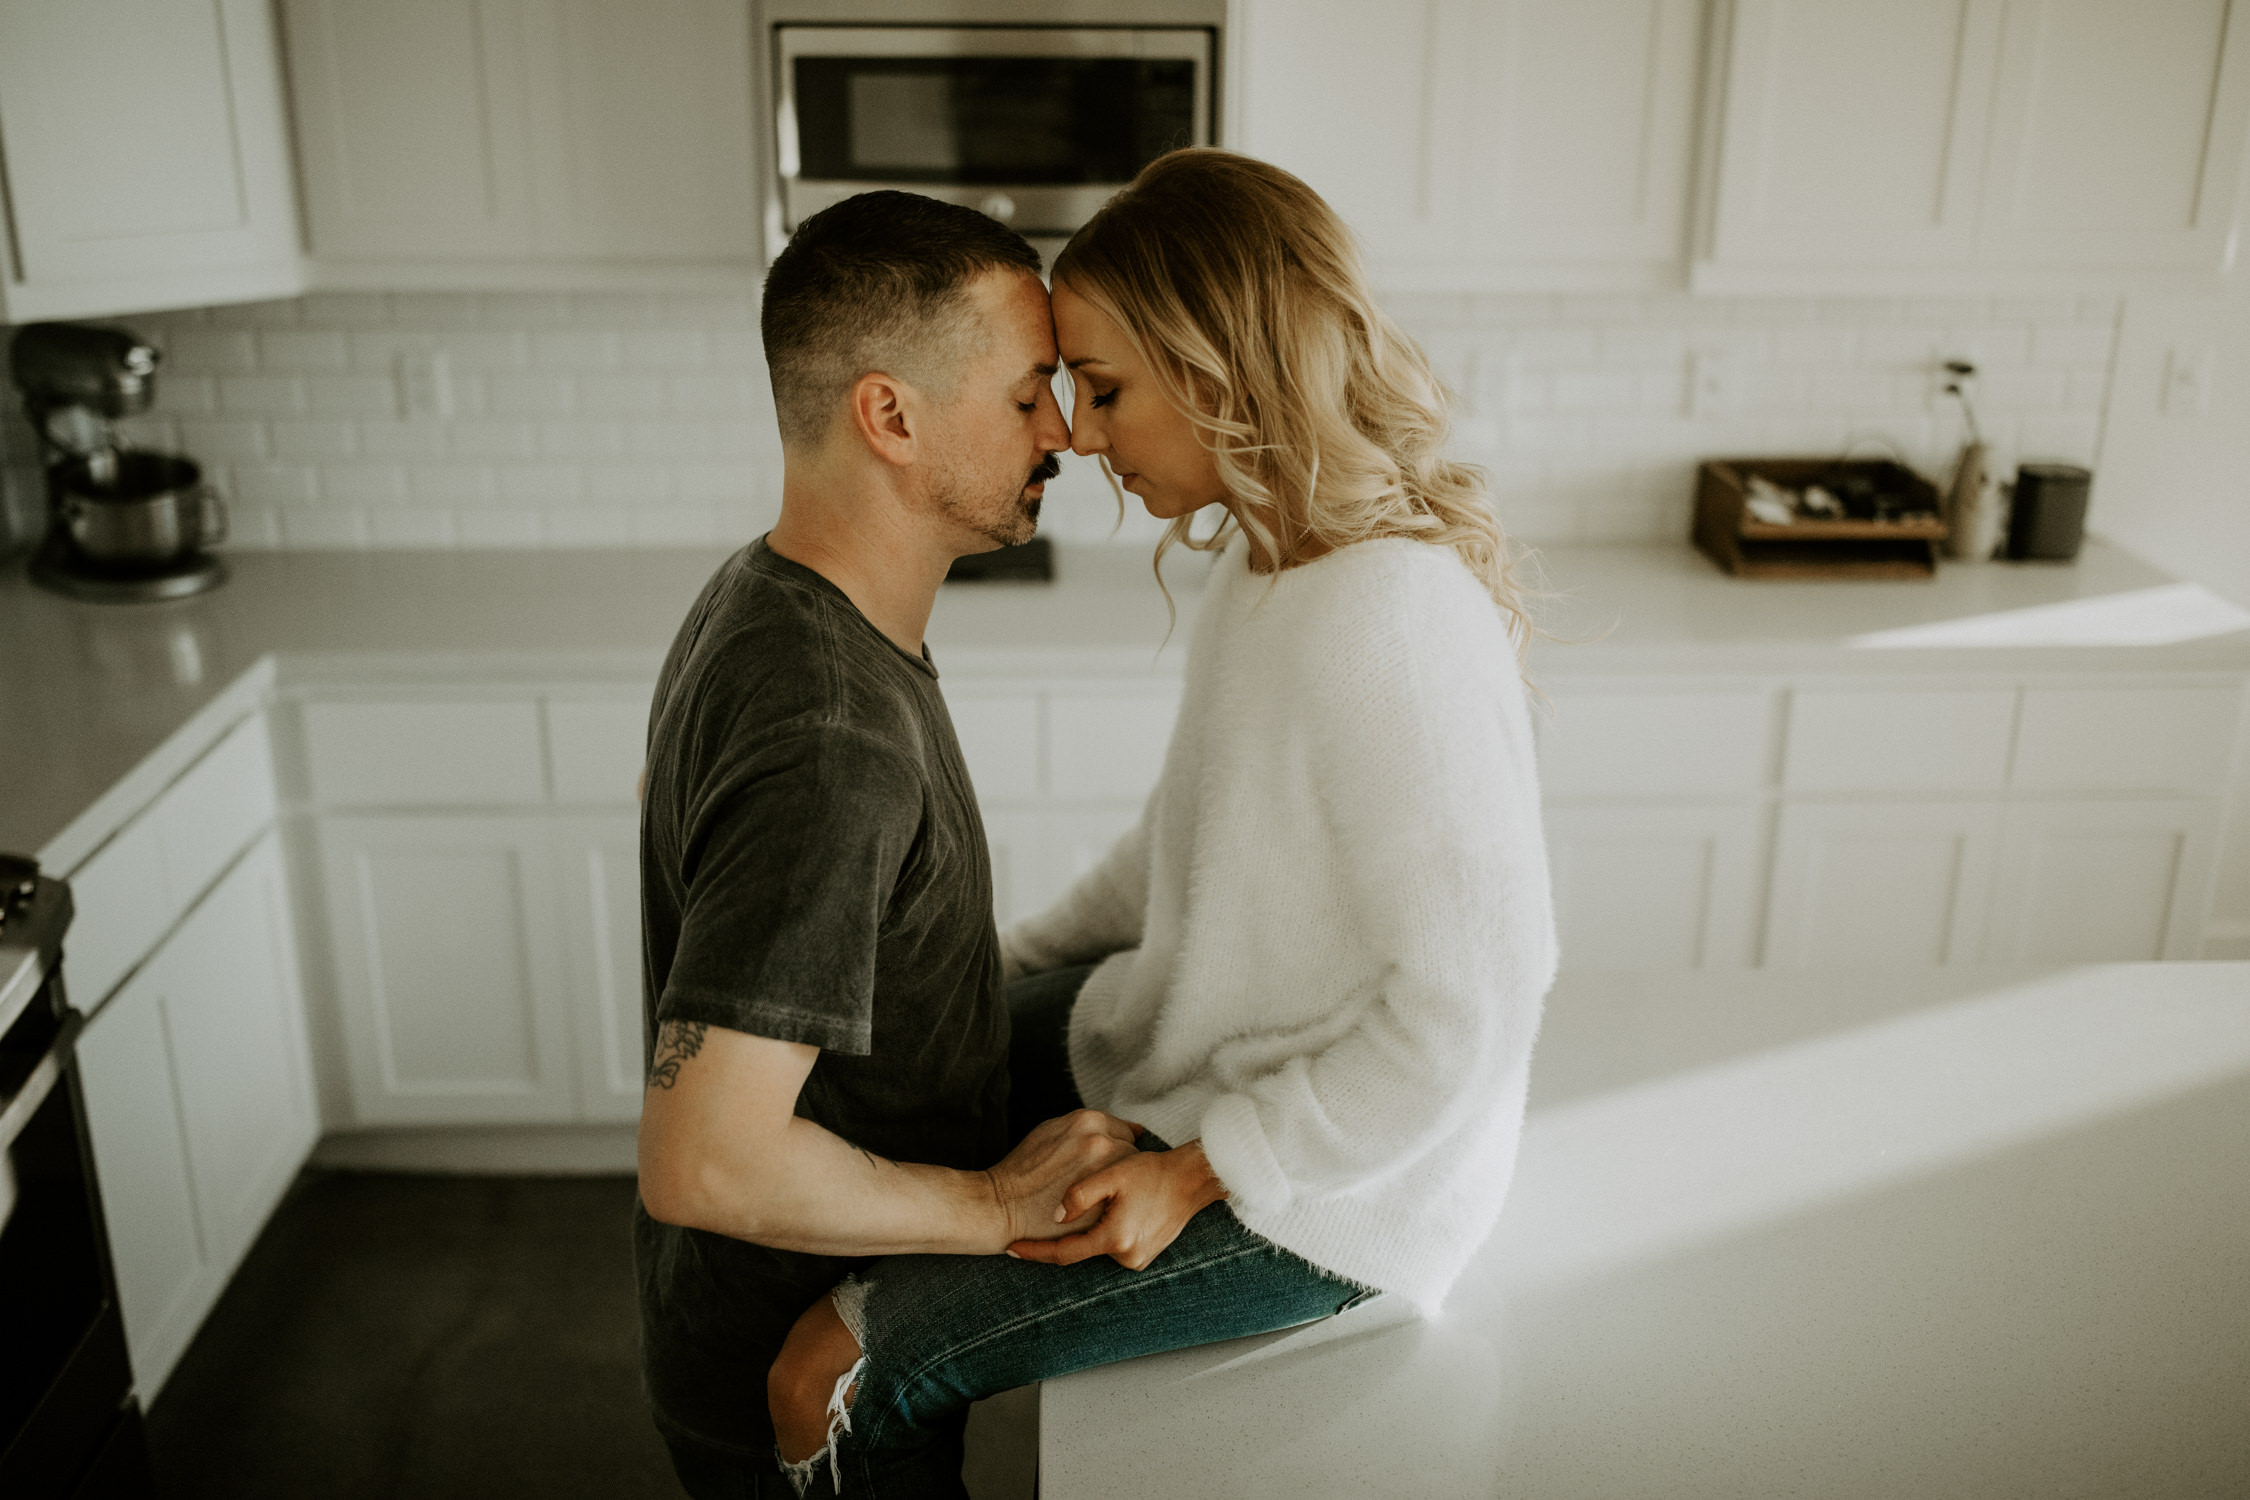 couple-intimate-in-home-session-northern-california-58.jpg